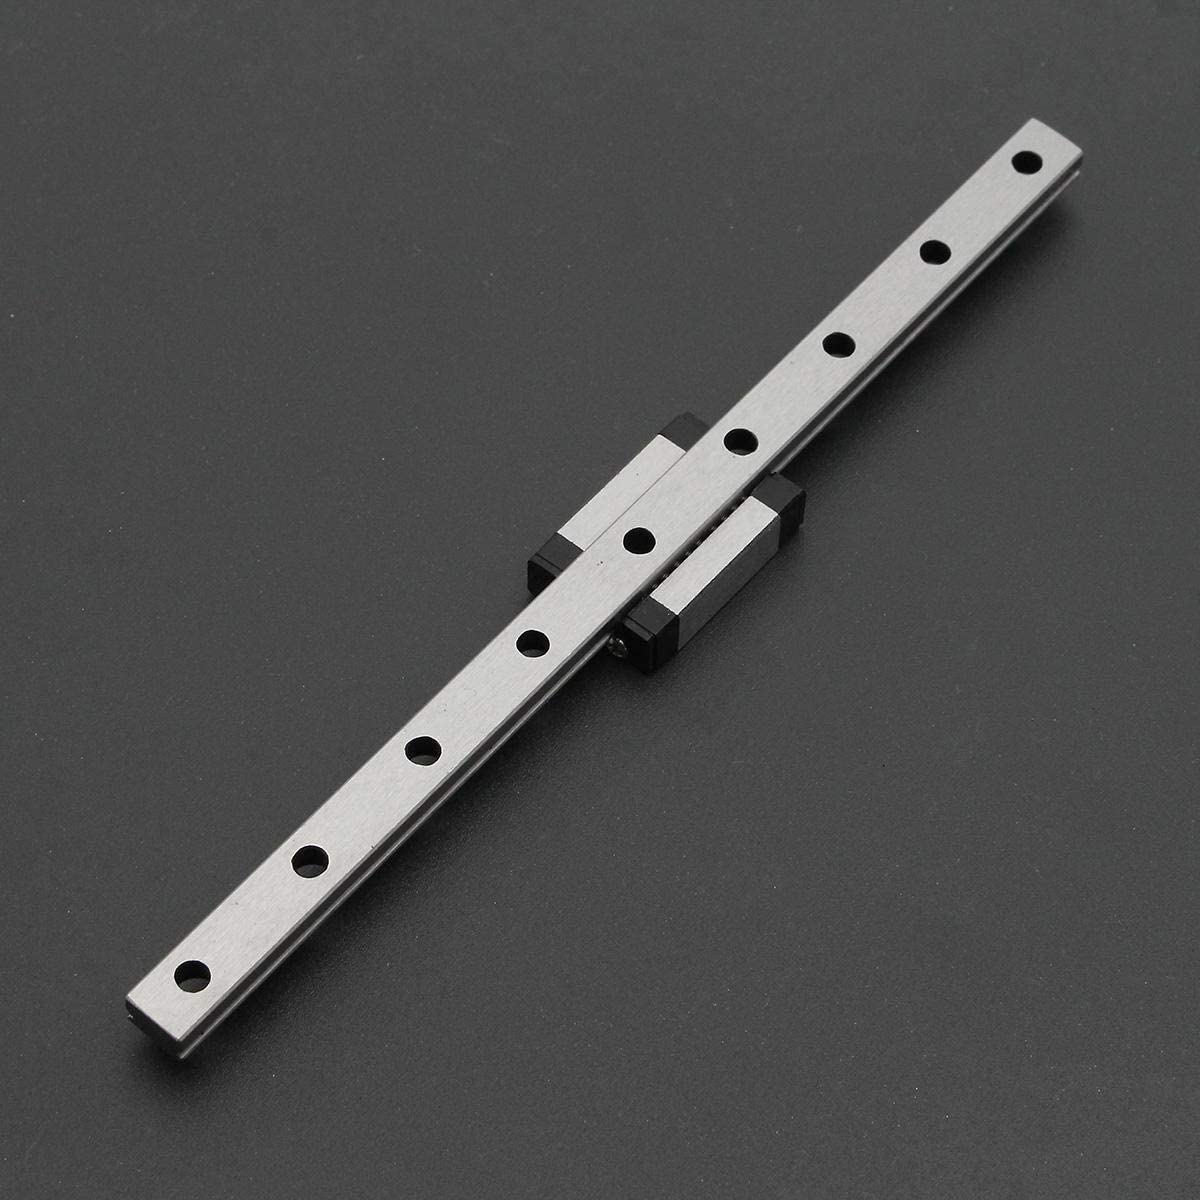 Aohi WXQ-XQ 175mm 2Pcs CPC Miniature CNC Linear Support Rail w//Slide Bearing with 1 Pc Silder Parts Linear Motion Products Linear Guides